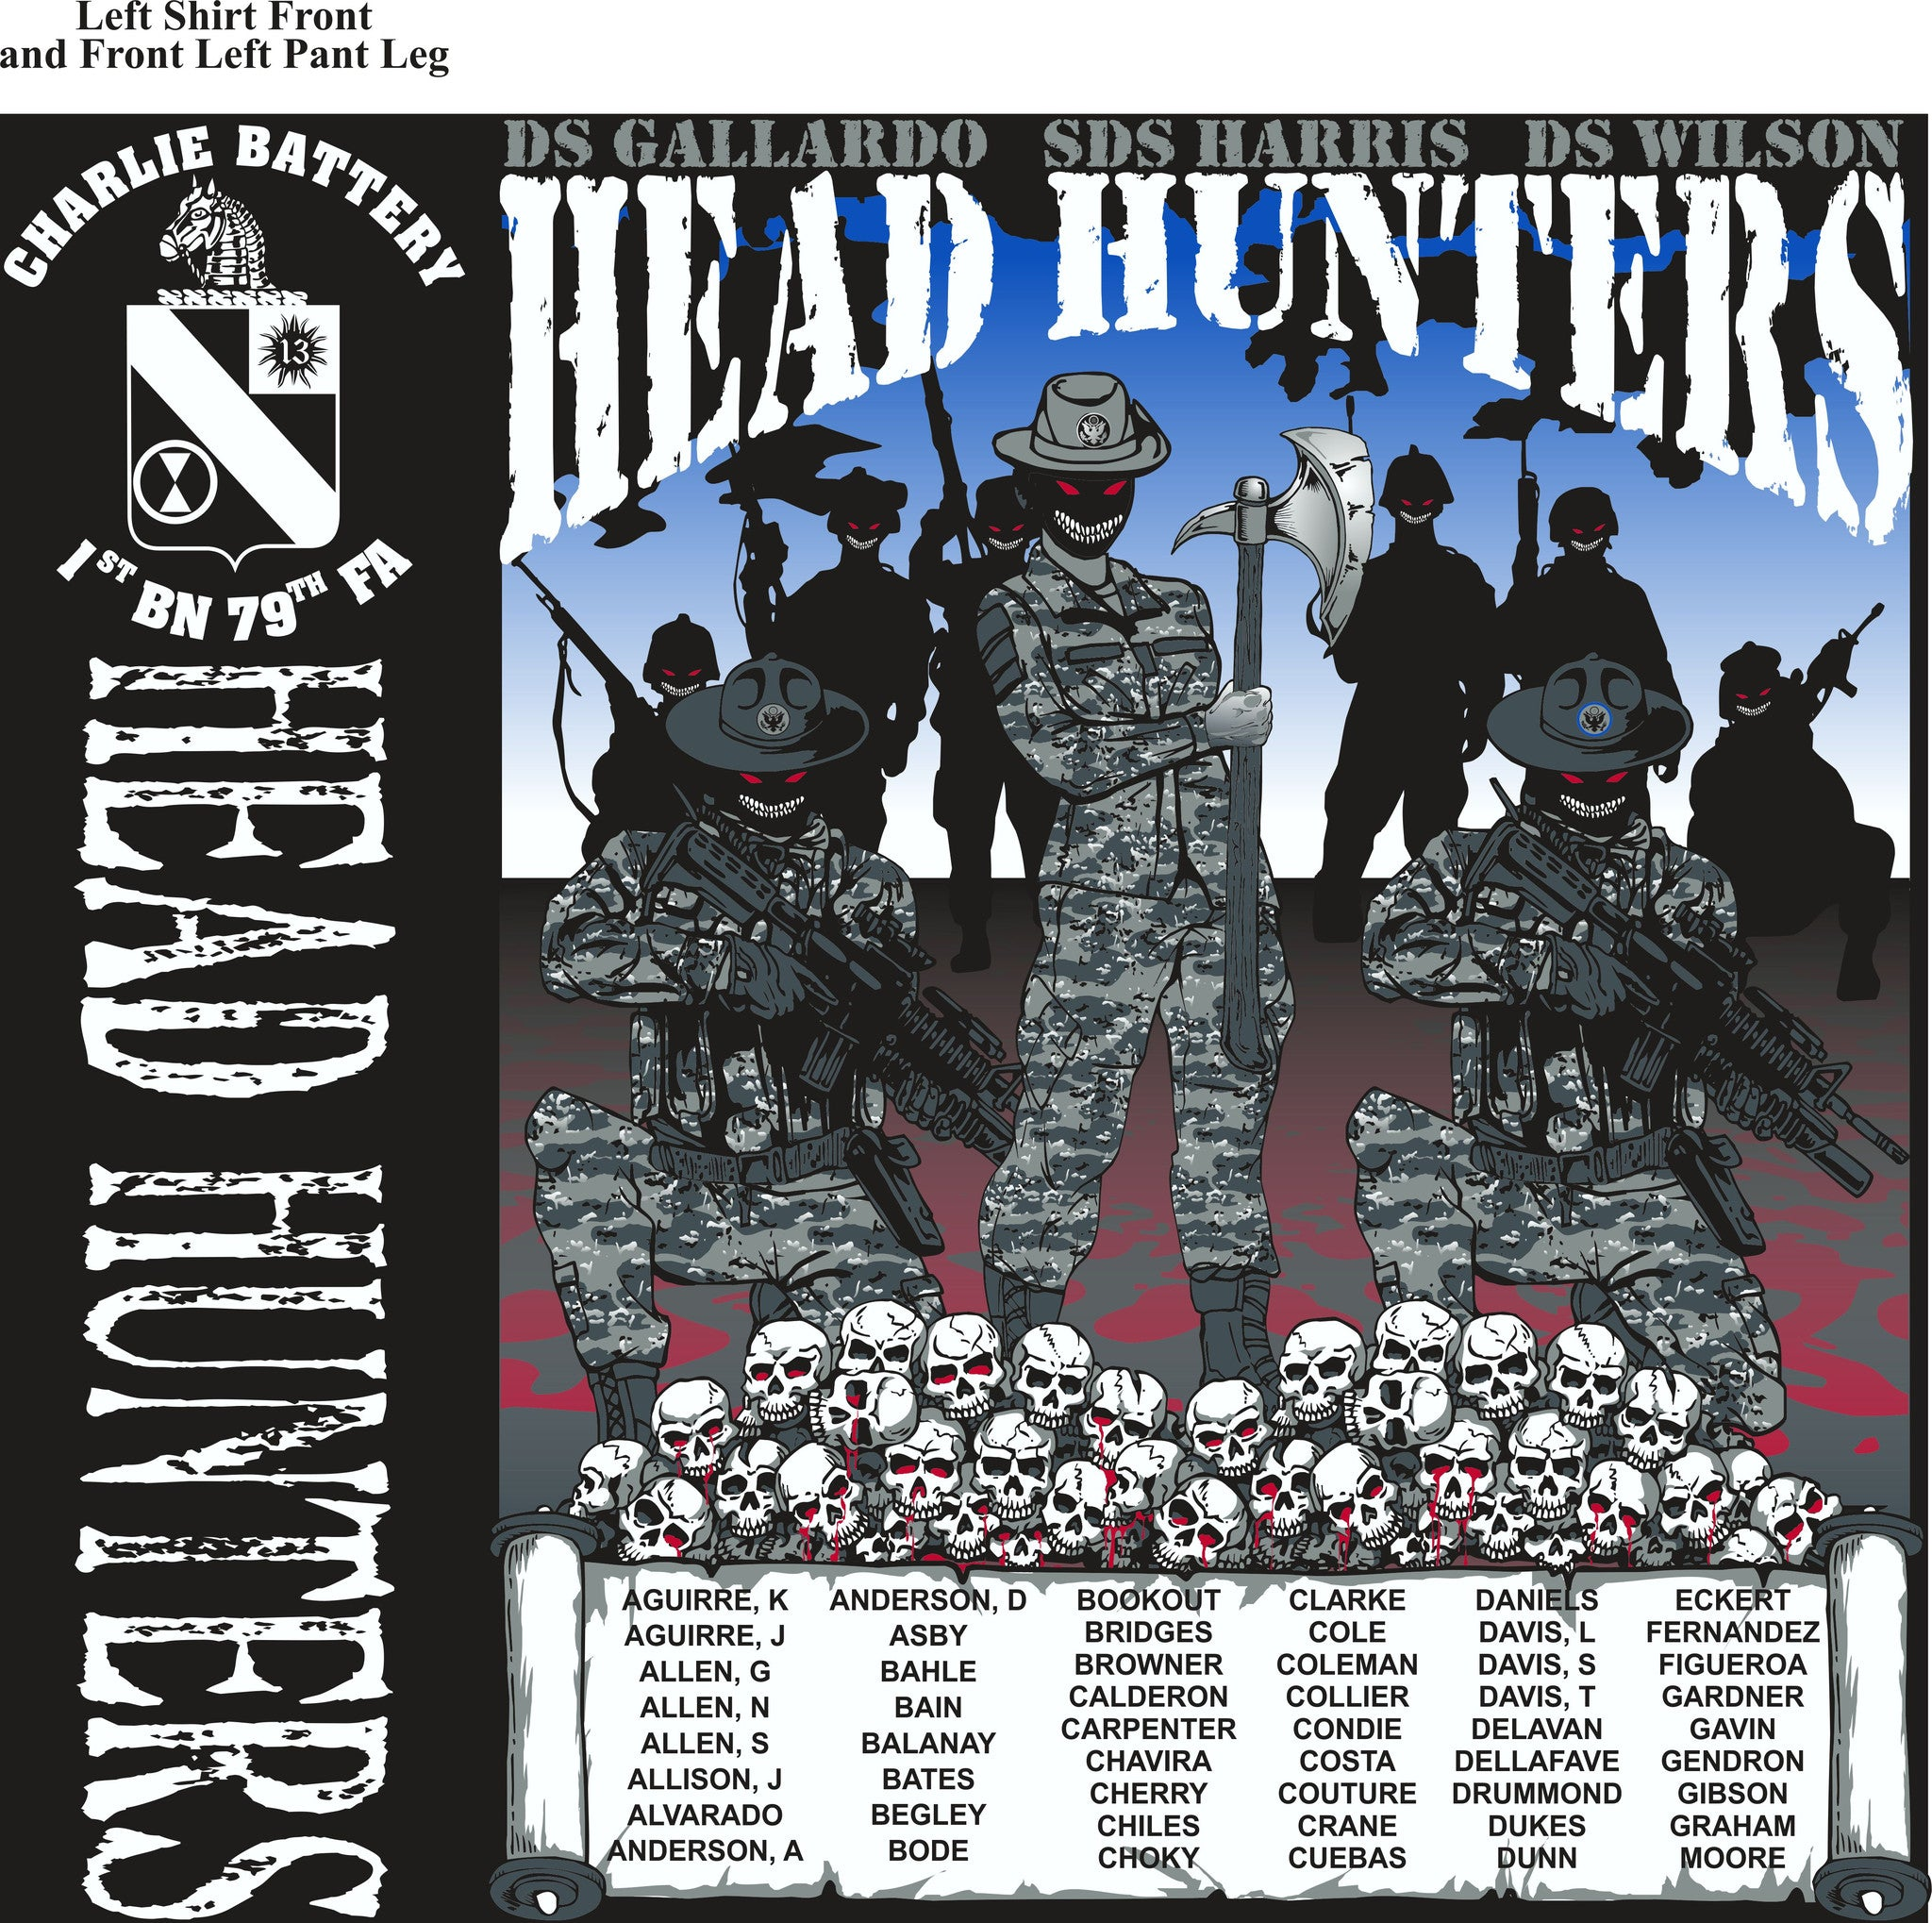 PLATOON SHIRTS (2nd generation print) CHARLIE 1st 79th HEAD HUNTERS FEB 2017